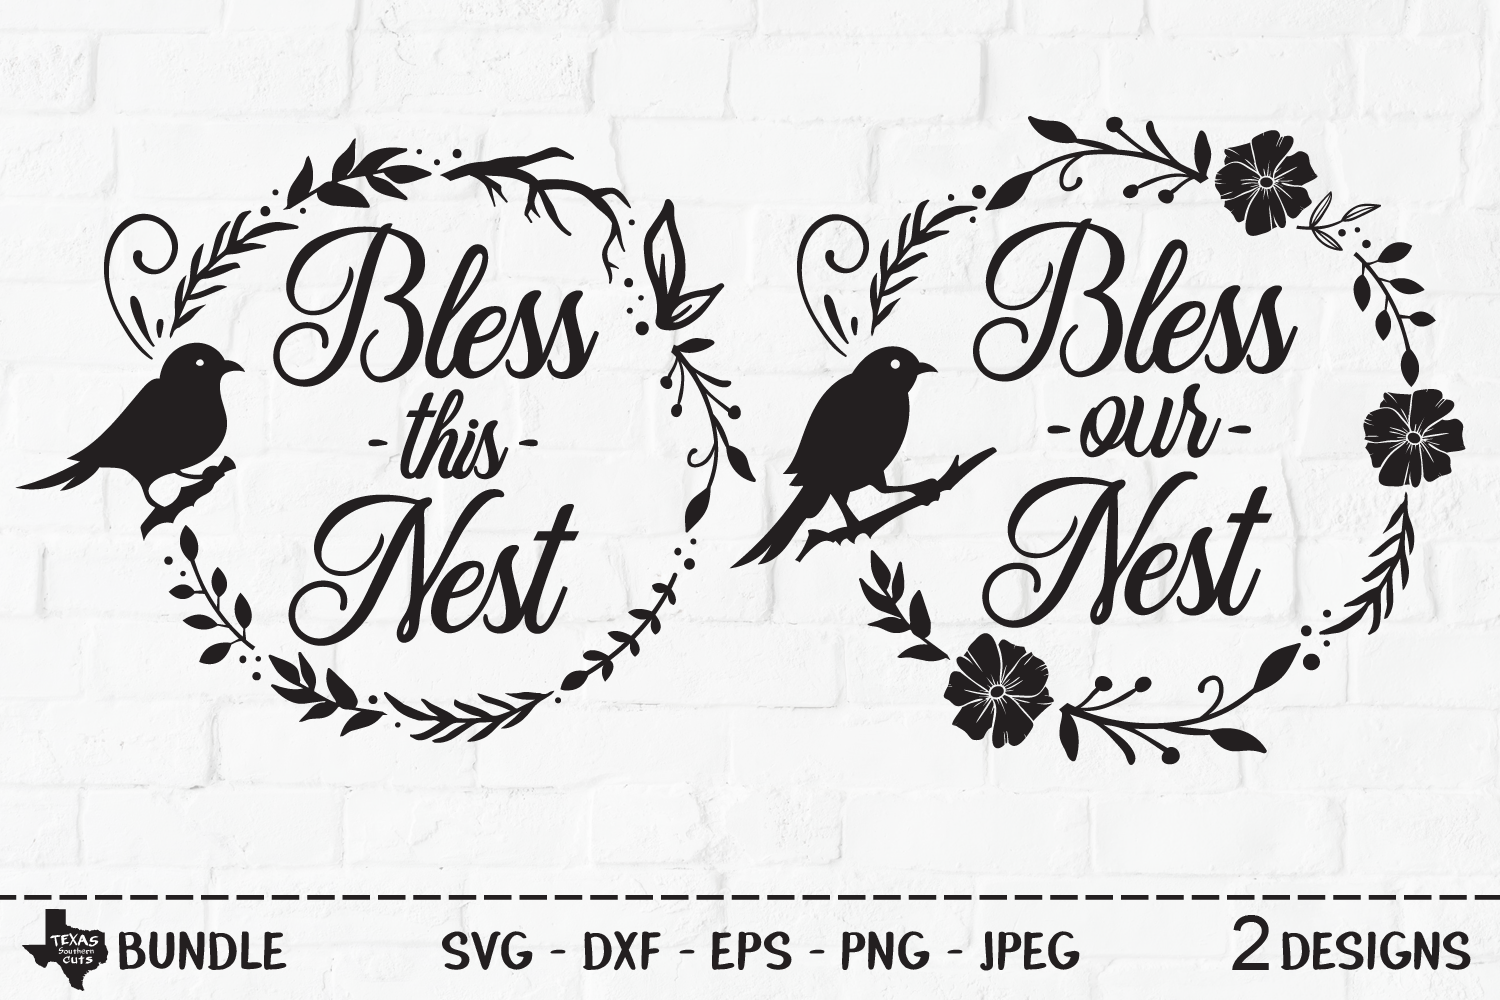 Download Free Bless Nest Bundle Bird Wreath Designs Graphic By for Cricut Explore, Silhouette and other cutting machines.